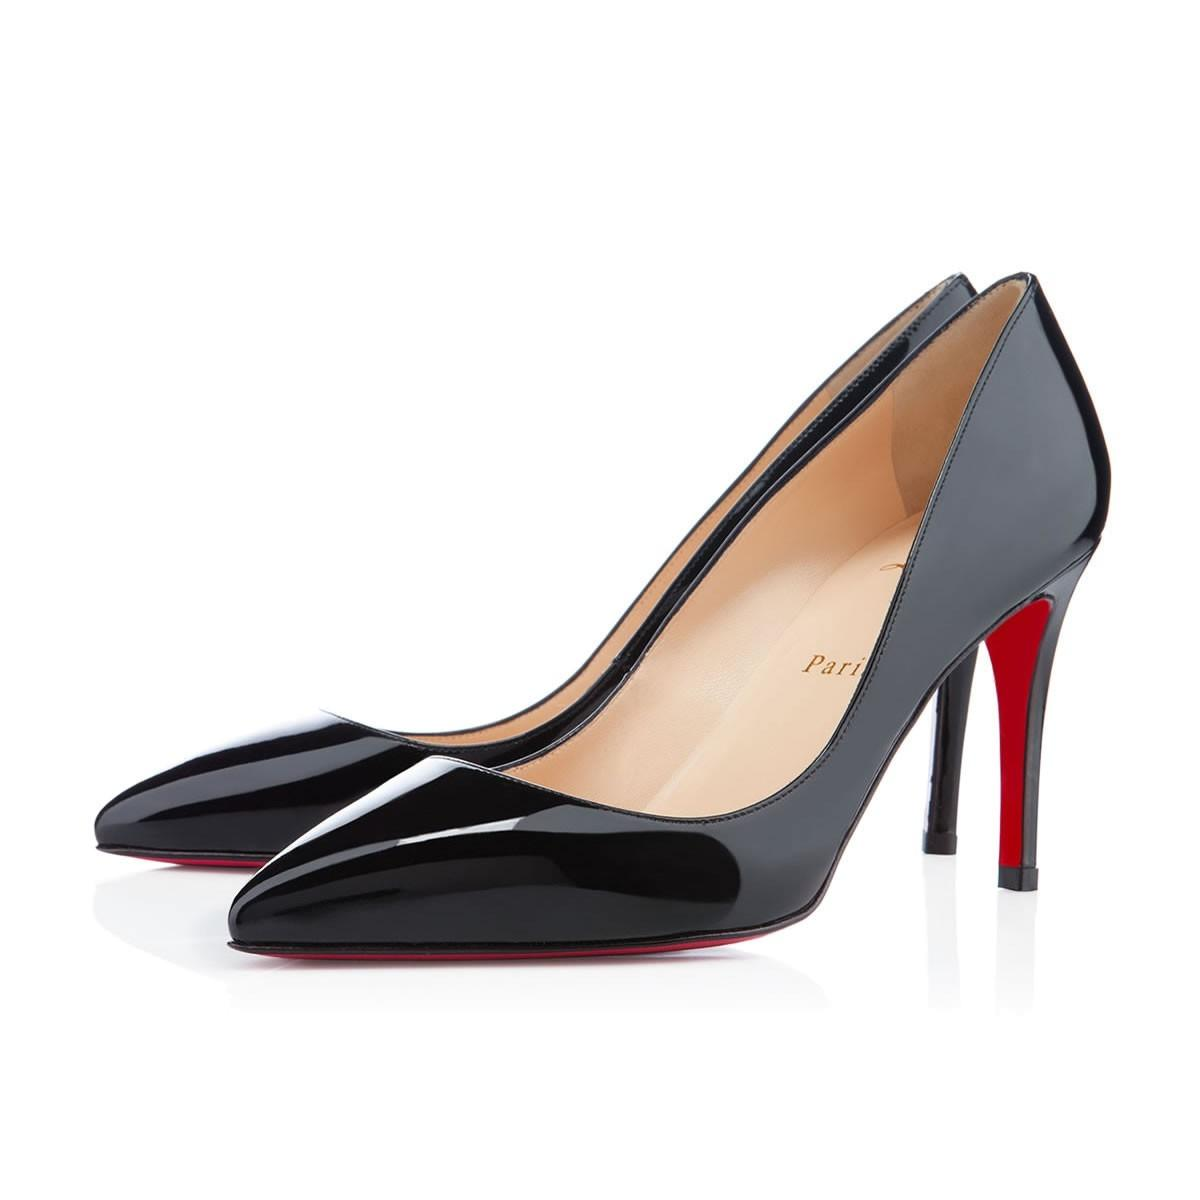 1249397566b Christian Christian Christian Louboutin Black Pigalle Follies Patent 85mm  Pumps Size EU 42 (Approx.